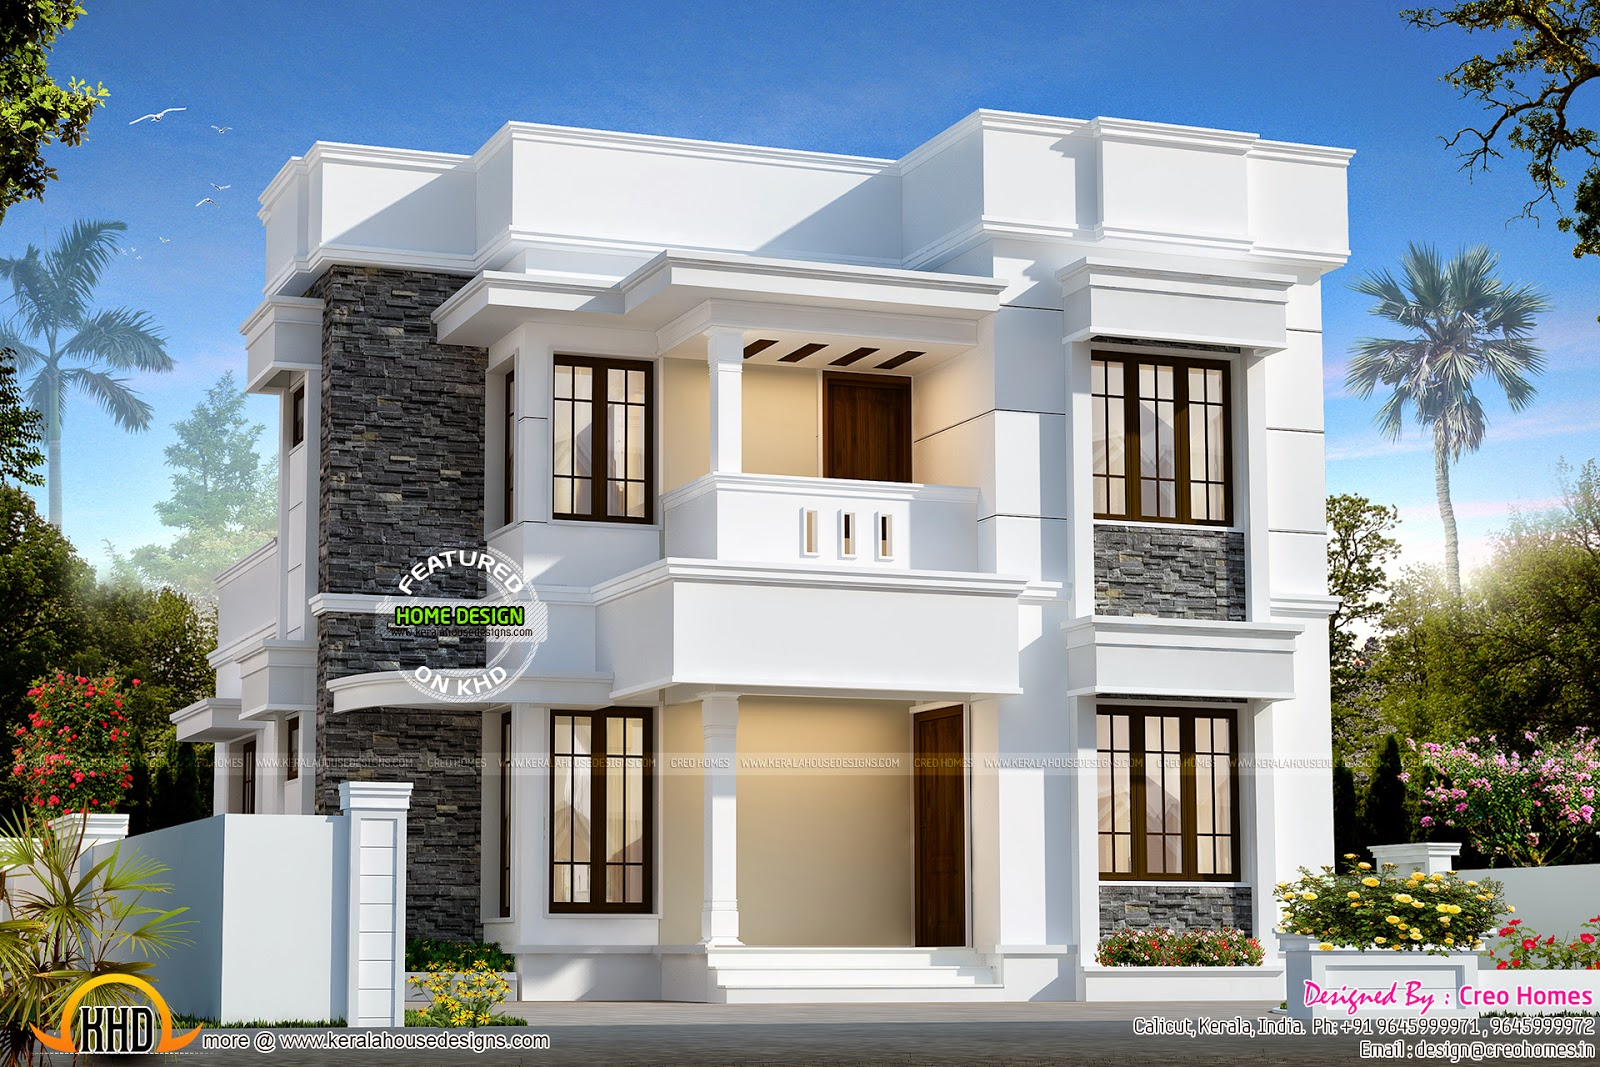 Nice and small double storied house kerala home design for Small two floor house